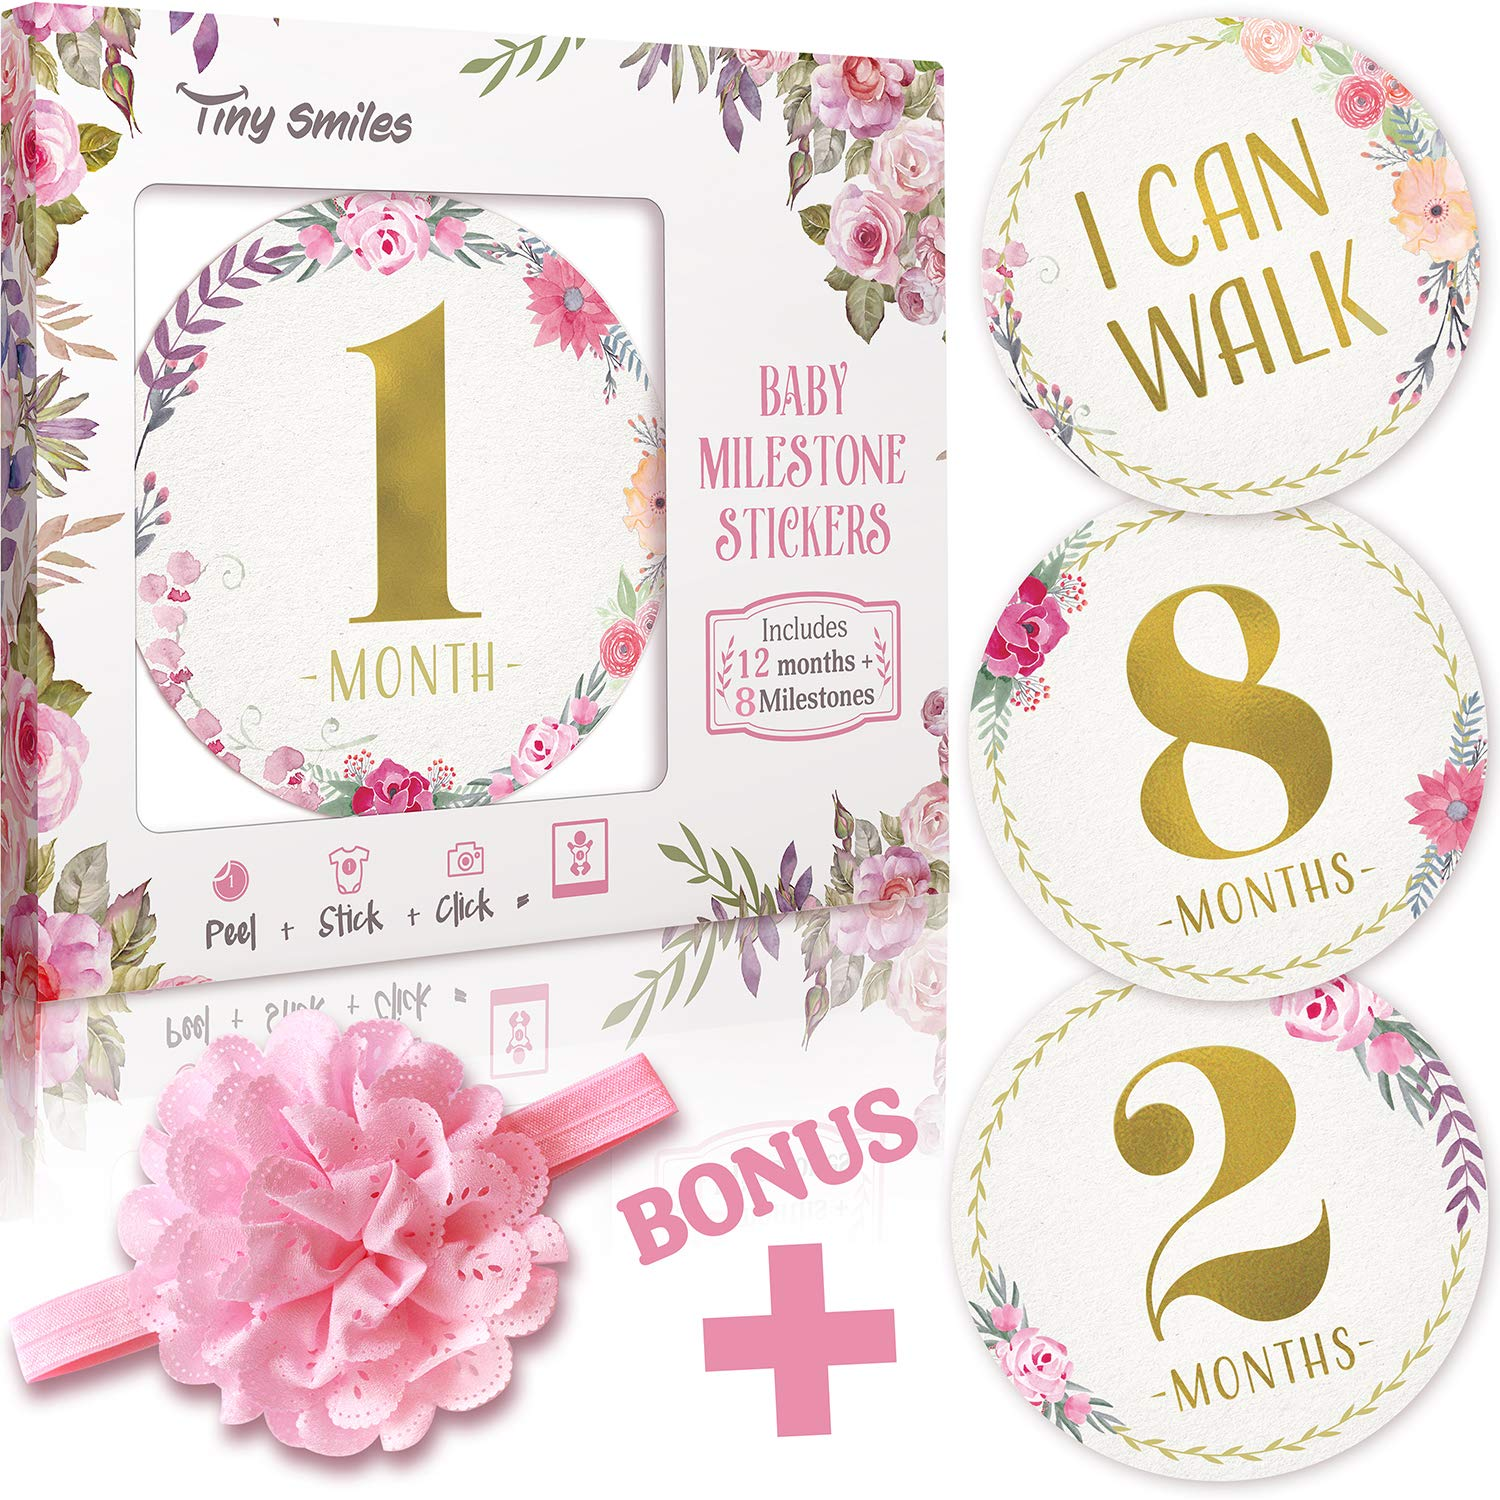 Baby Monthly Milestone Stickers (Free Headband) 20 Premium Floral Metallic Gold Stickers for First Year - 0 to 12 Month Onesie Belly Stickers - Best Baby Shower Gift or Scrapbook Photo Keepsake by Tiny Smiles